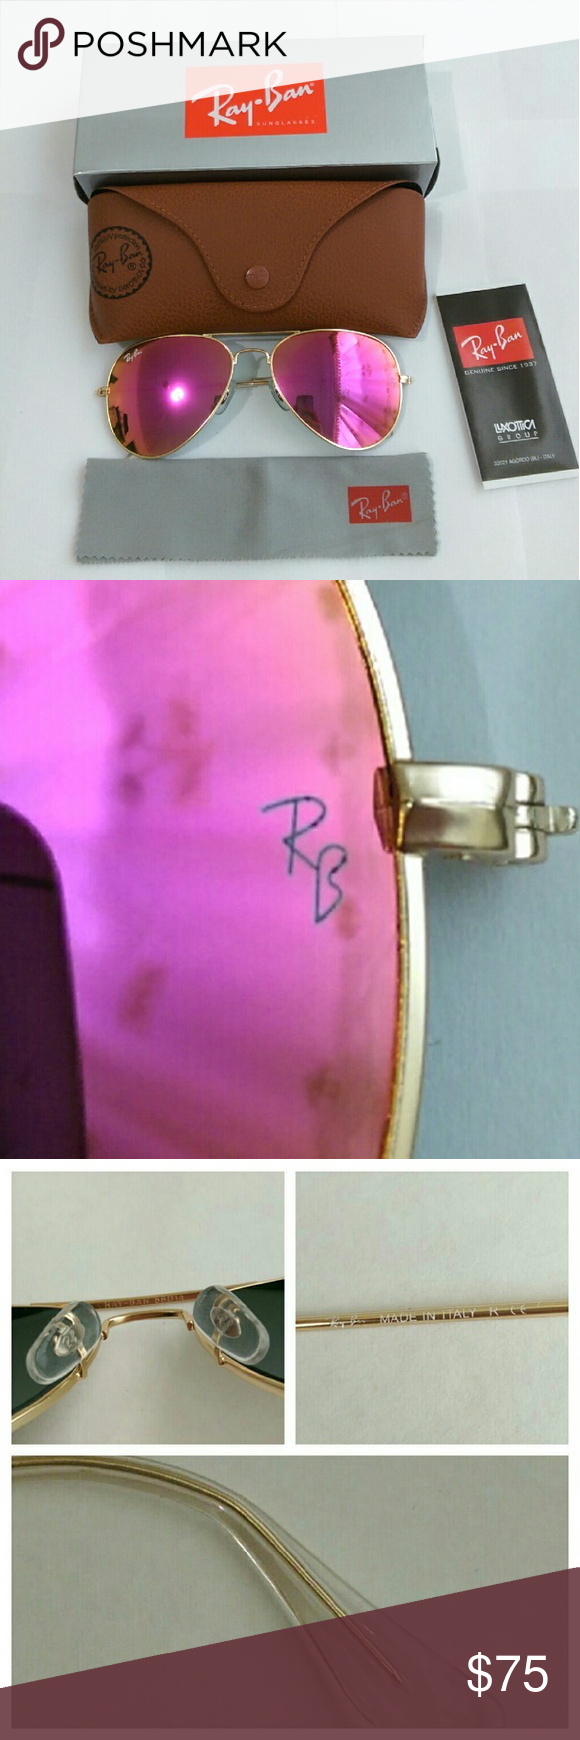 Hot pink Ray-Ban aviator sunglasses PRICE FIRM  Authentic  Brand new in box  Unisex Made in Italy (engraved on right temple ) Size 58mm Lens color -- hot pink (real glass lens for better vision) Gold frame Comes with box, case, cleaning cloth and booklet Fast Shipping with 2-3 days priority ( will ship same day if purchase before noon, otherwise will ship next business day from Monday - Saturday ) Trusted seller!!! Ray-Ban Accessories Sunglasses